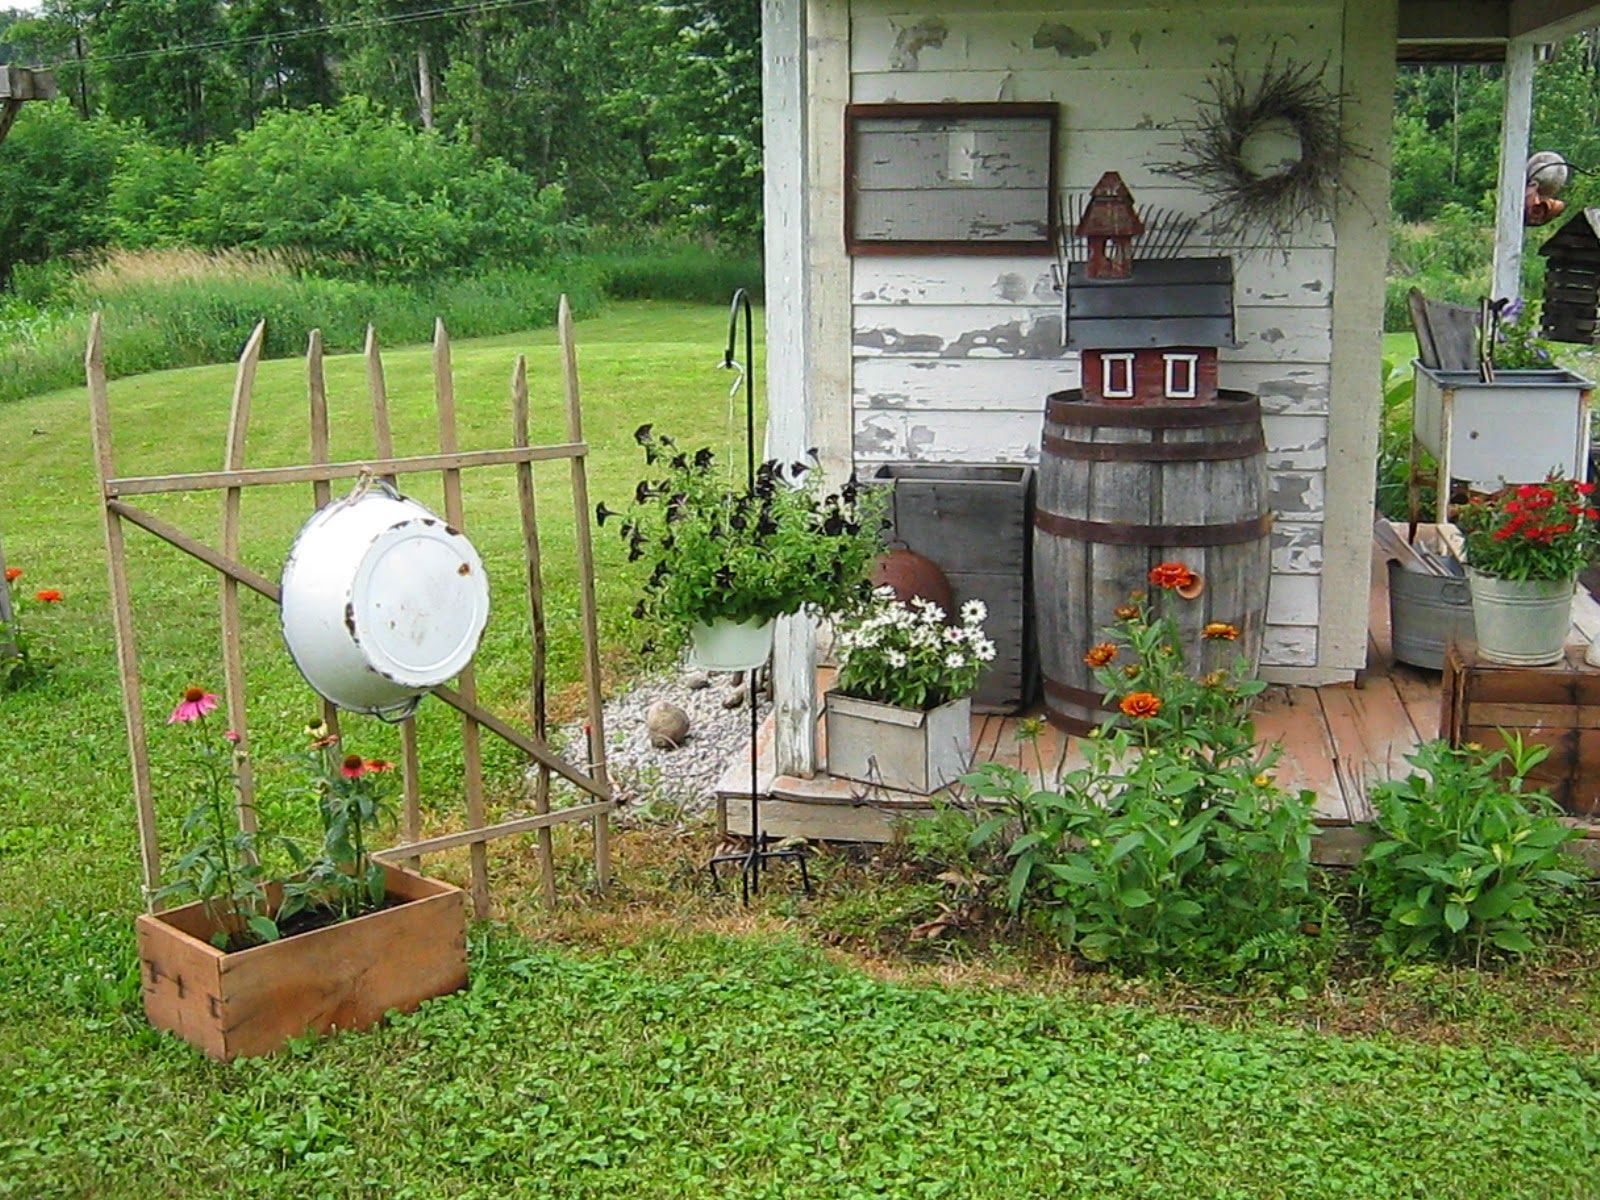 Primitive Passion Decorating: Garden shed expansion started over the ...